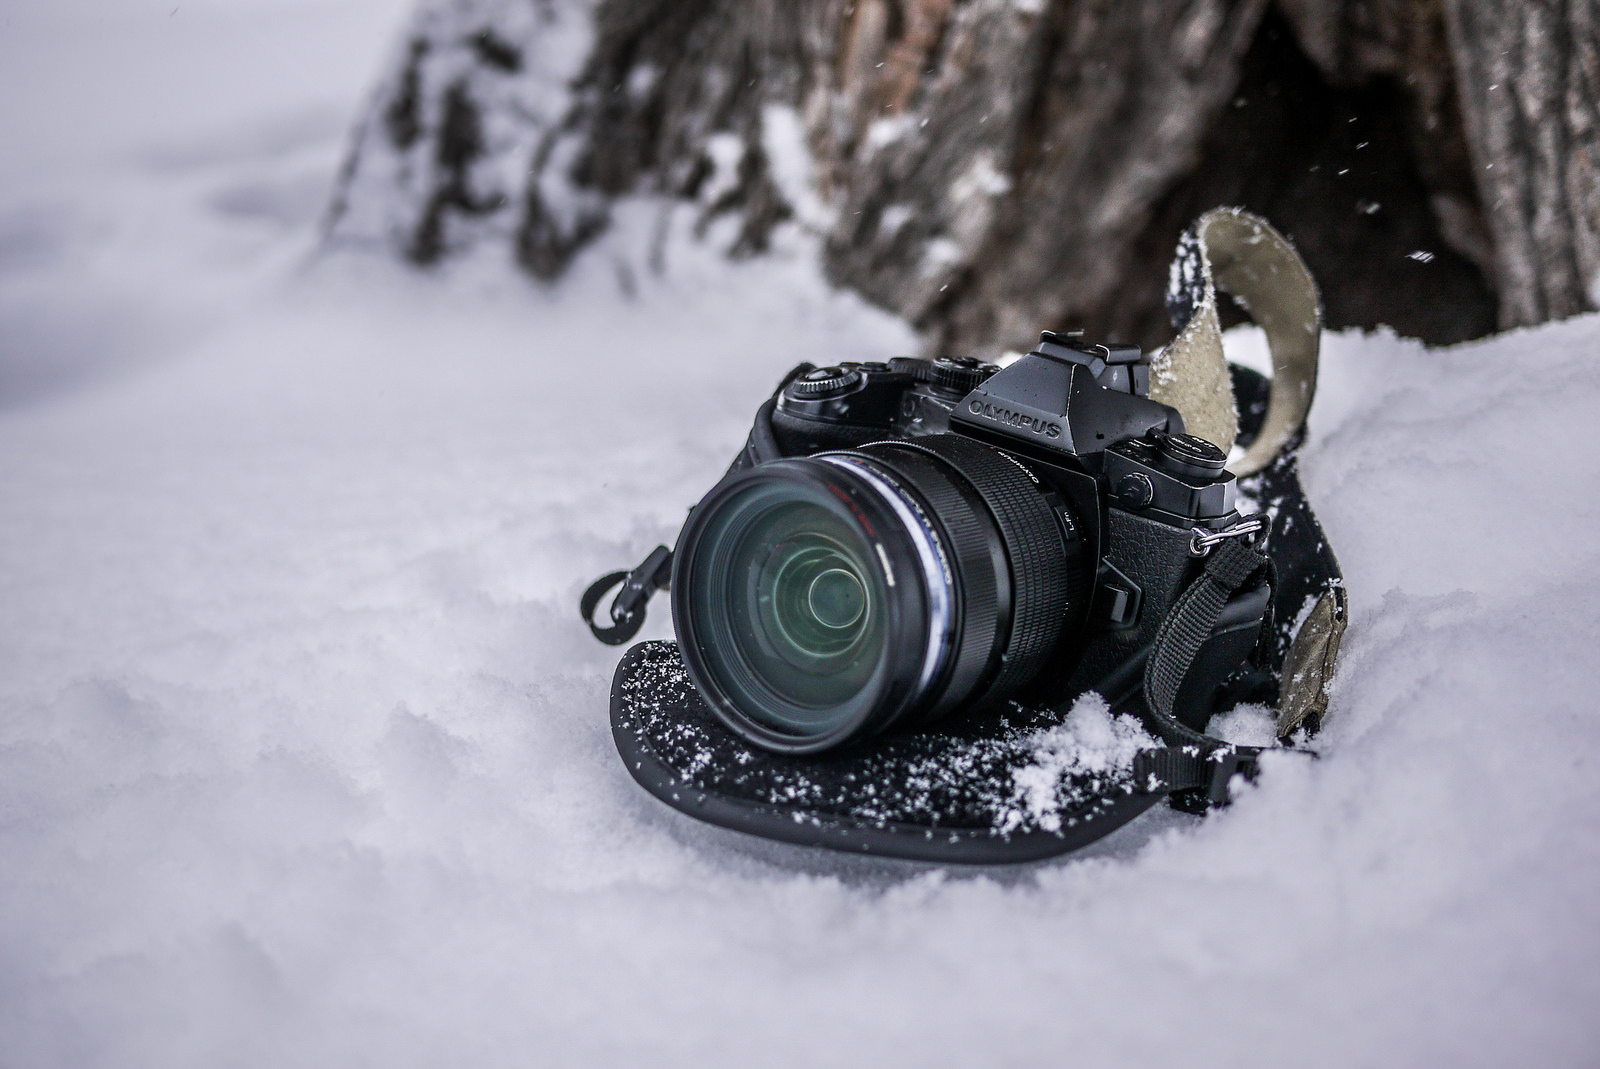 Adventure Photography: Olympus OM-D E-M1 Mirrorless Camera Long Term Review